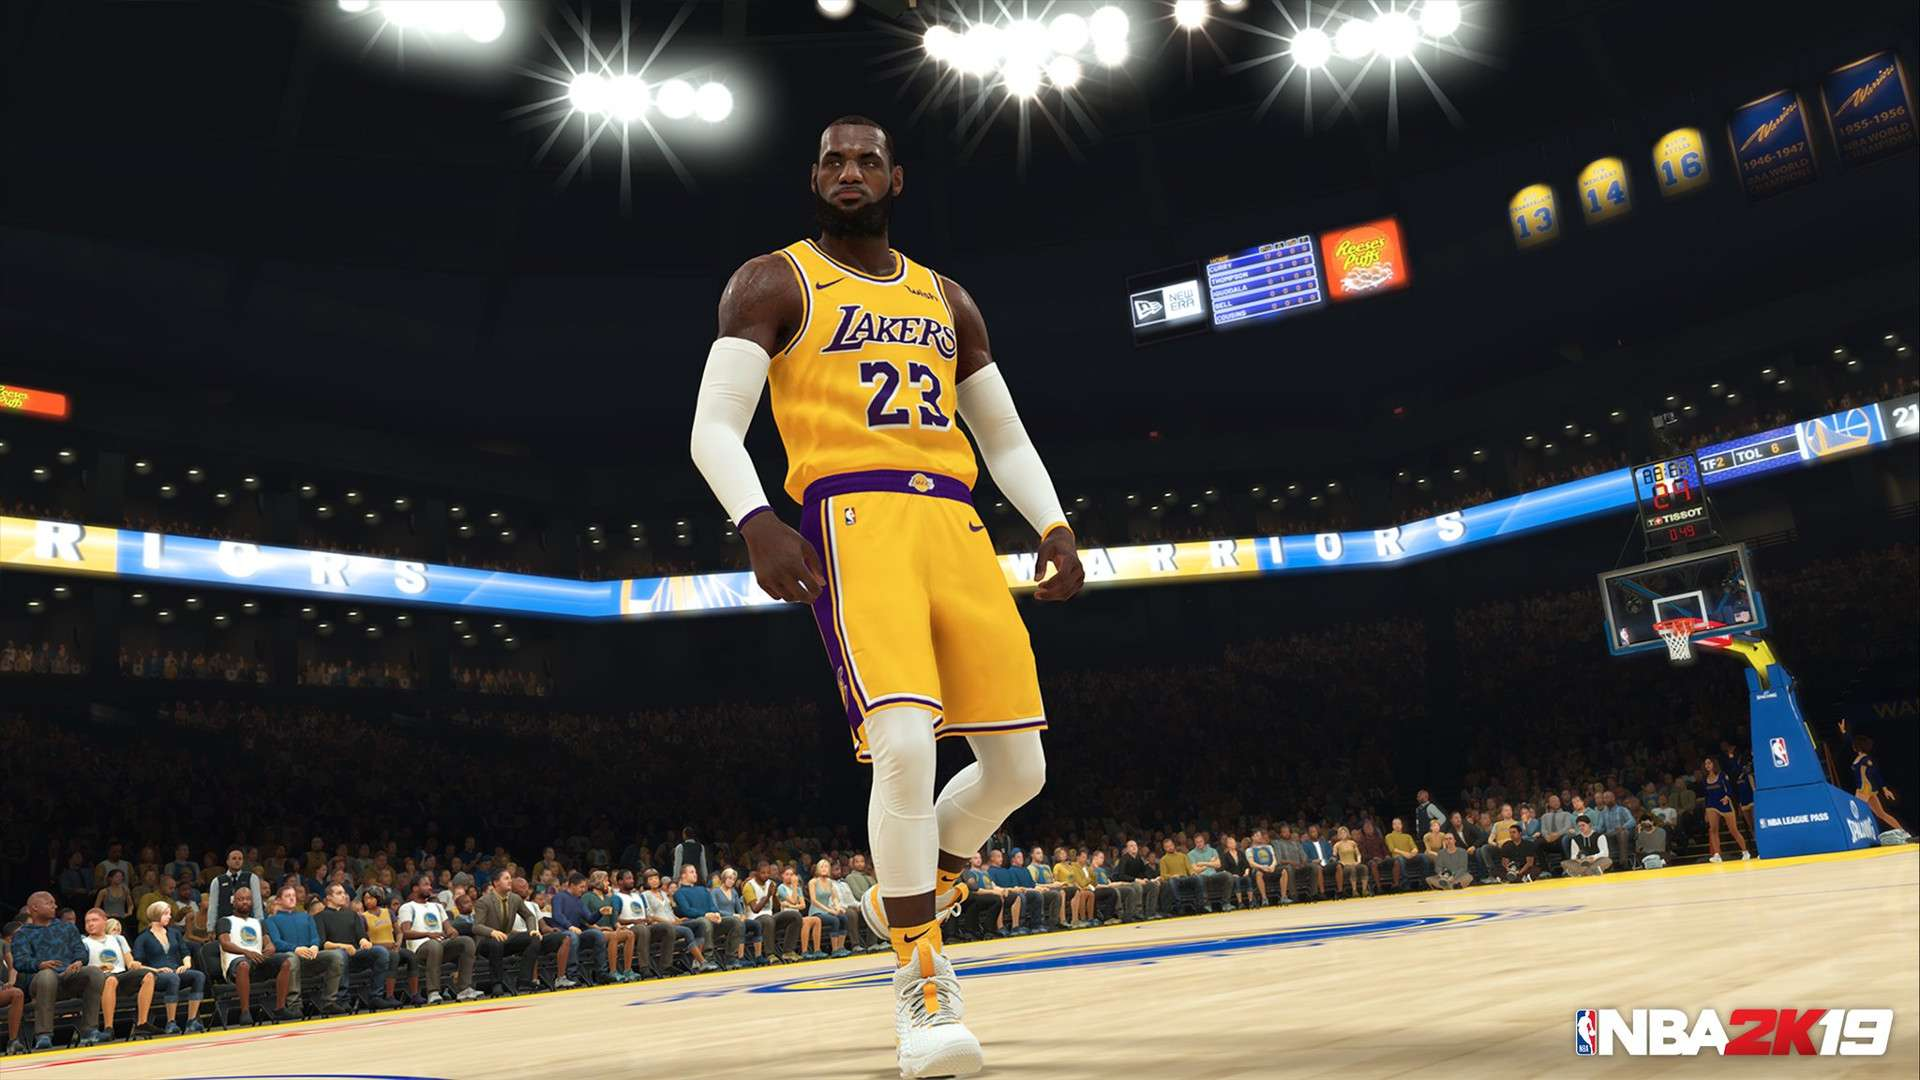 NBA 2K19' and 'NBA Live 19' review: Which game is king of